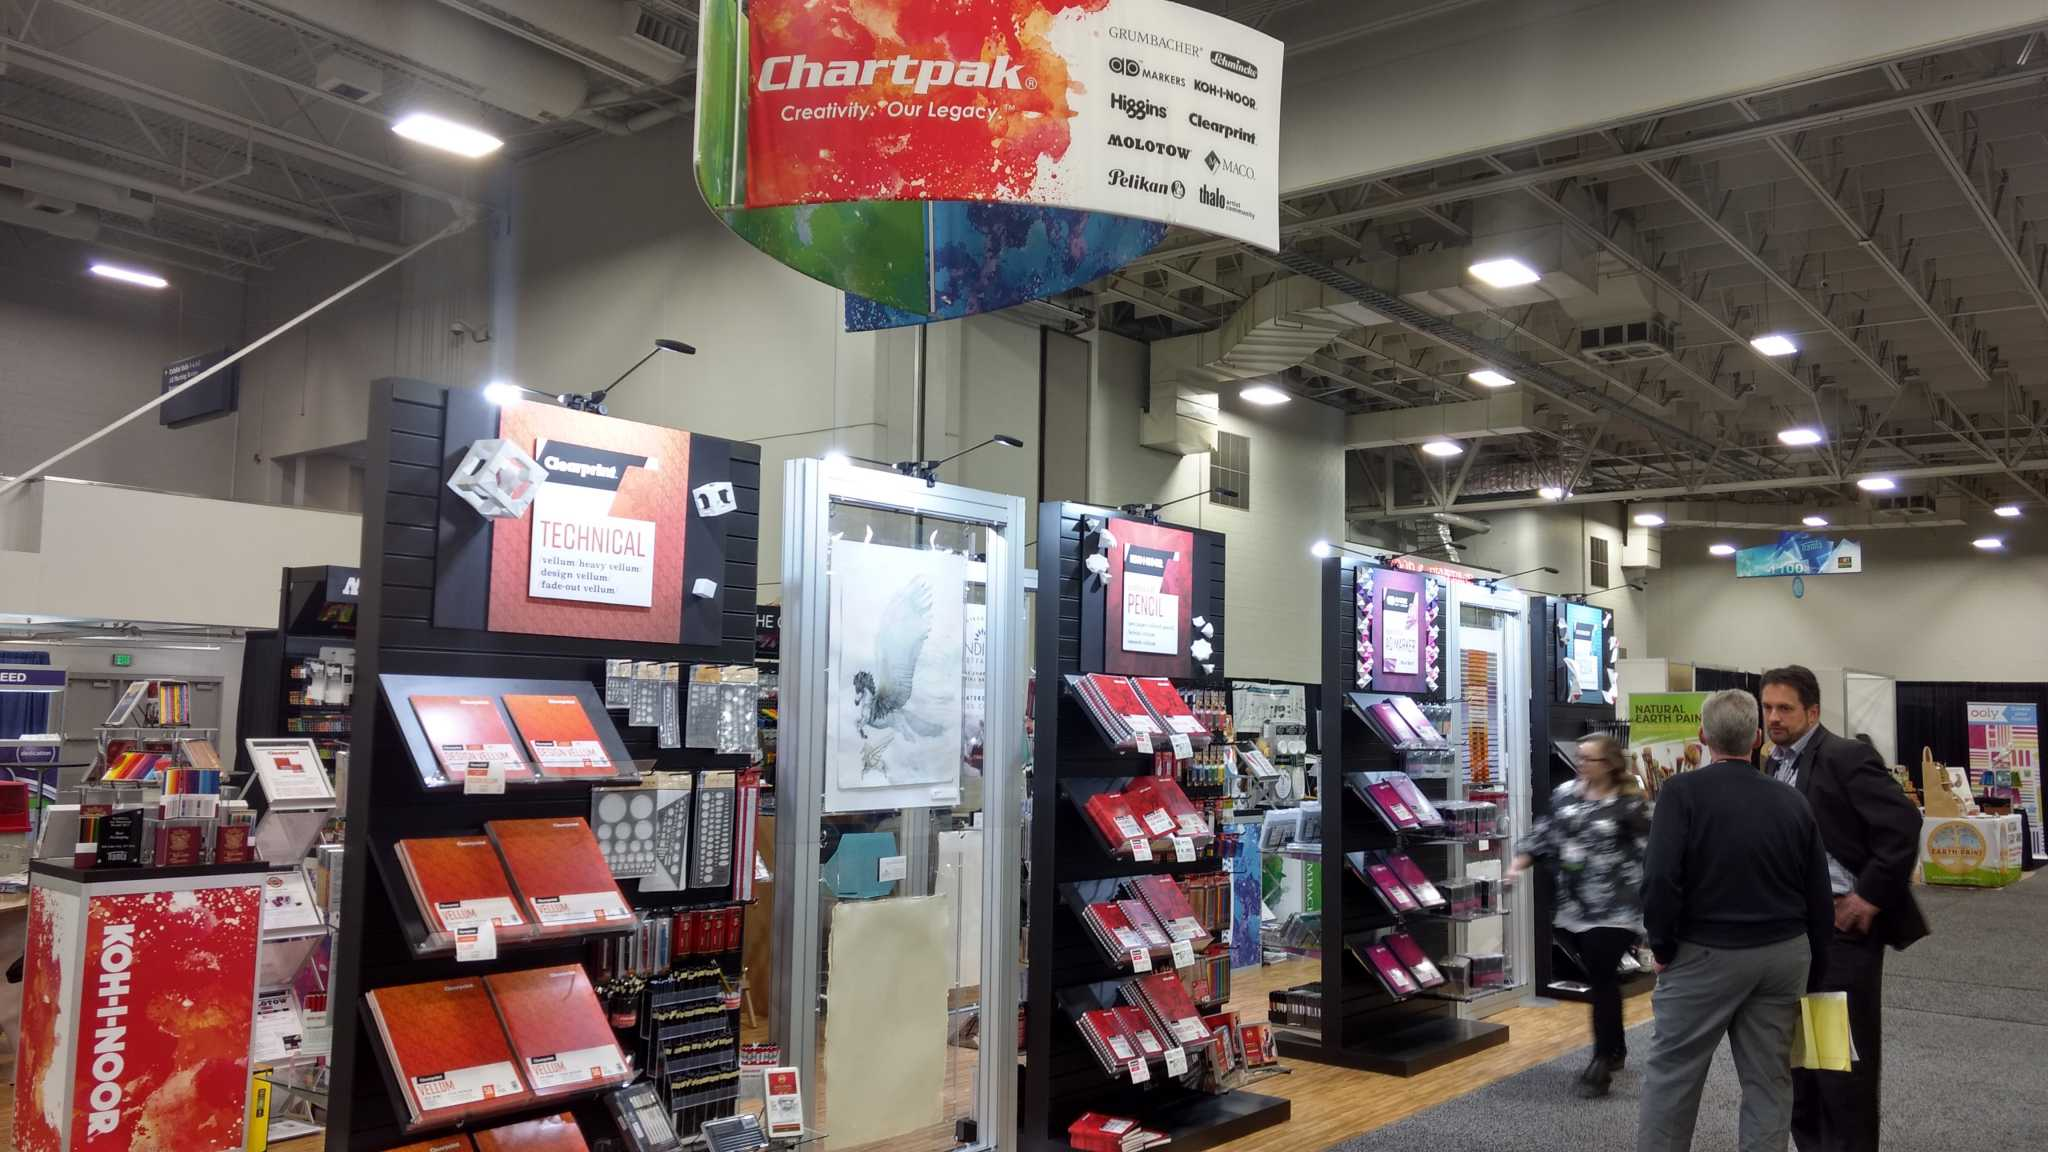 Chartpak island exhibit features custom slat walls to display products